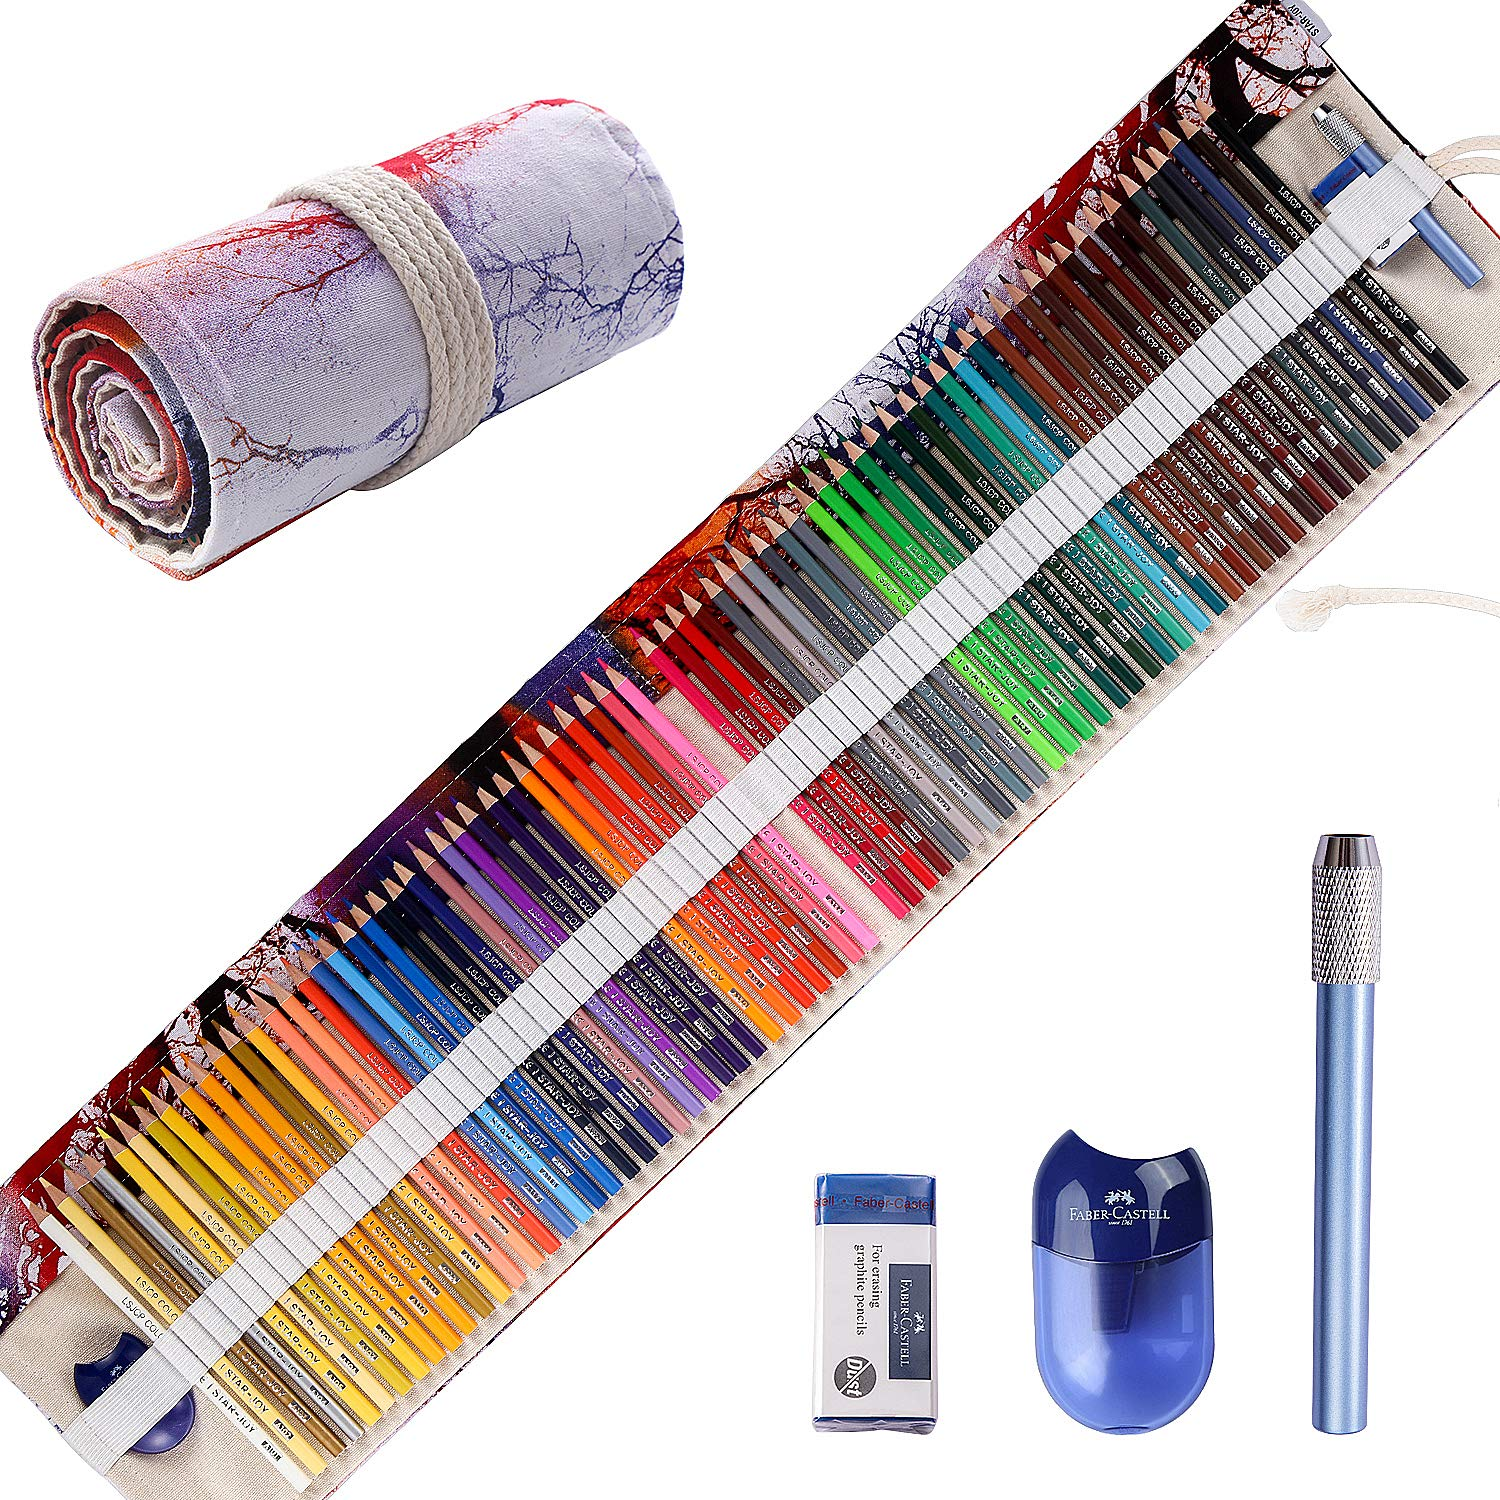 Coloring 72 Count Handmade Accessories Included